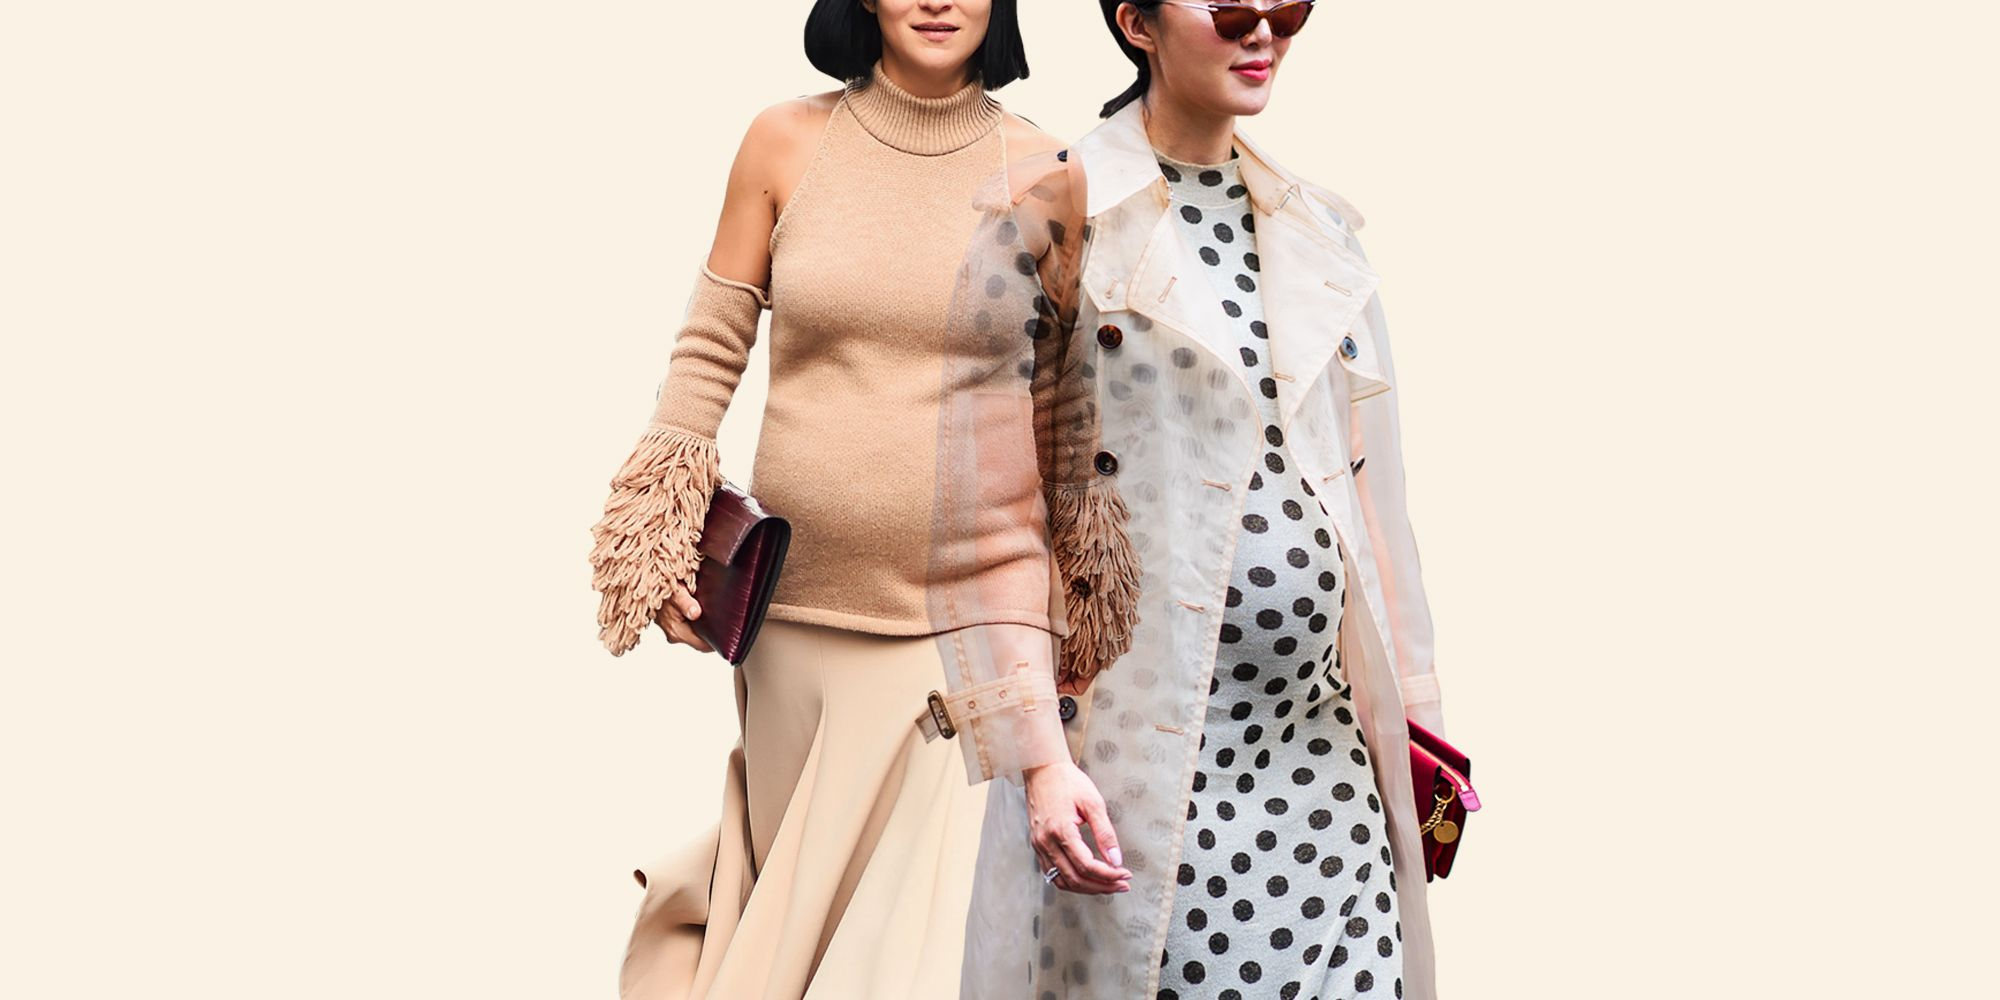 123ac89880ff How To Dress Your Bump: Fashion Insiders Address Maternity Style